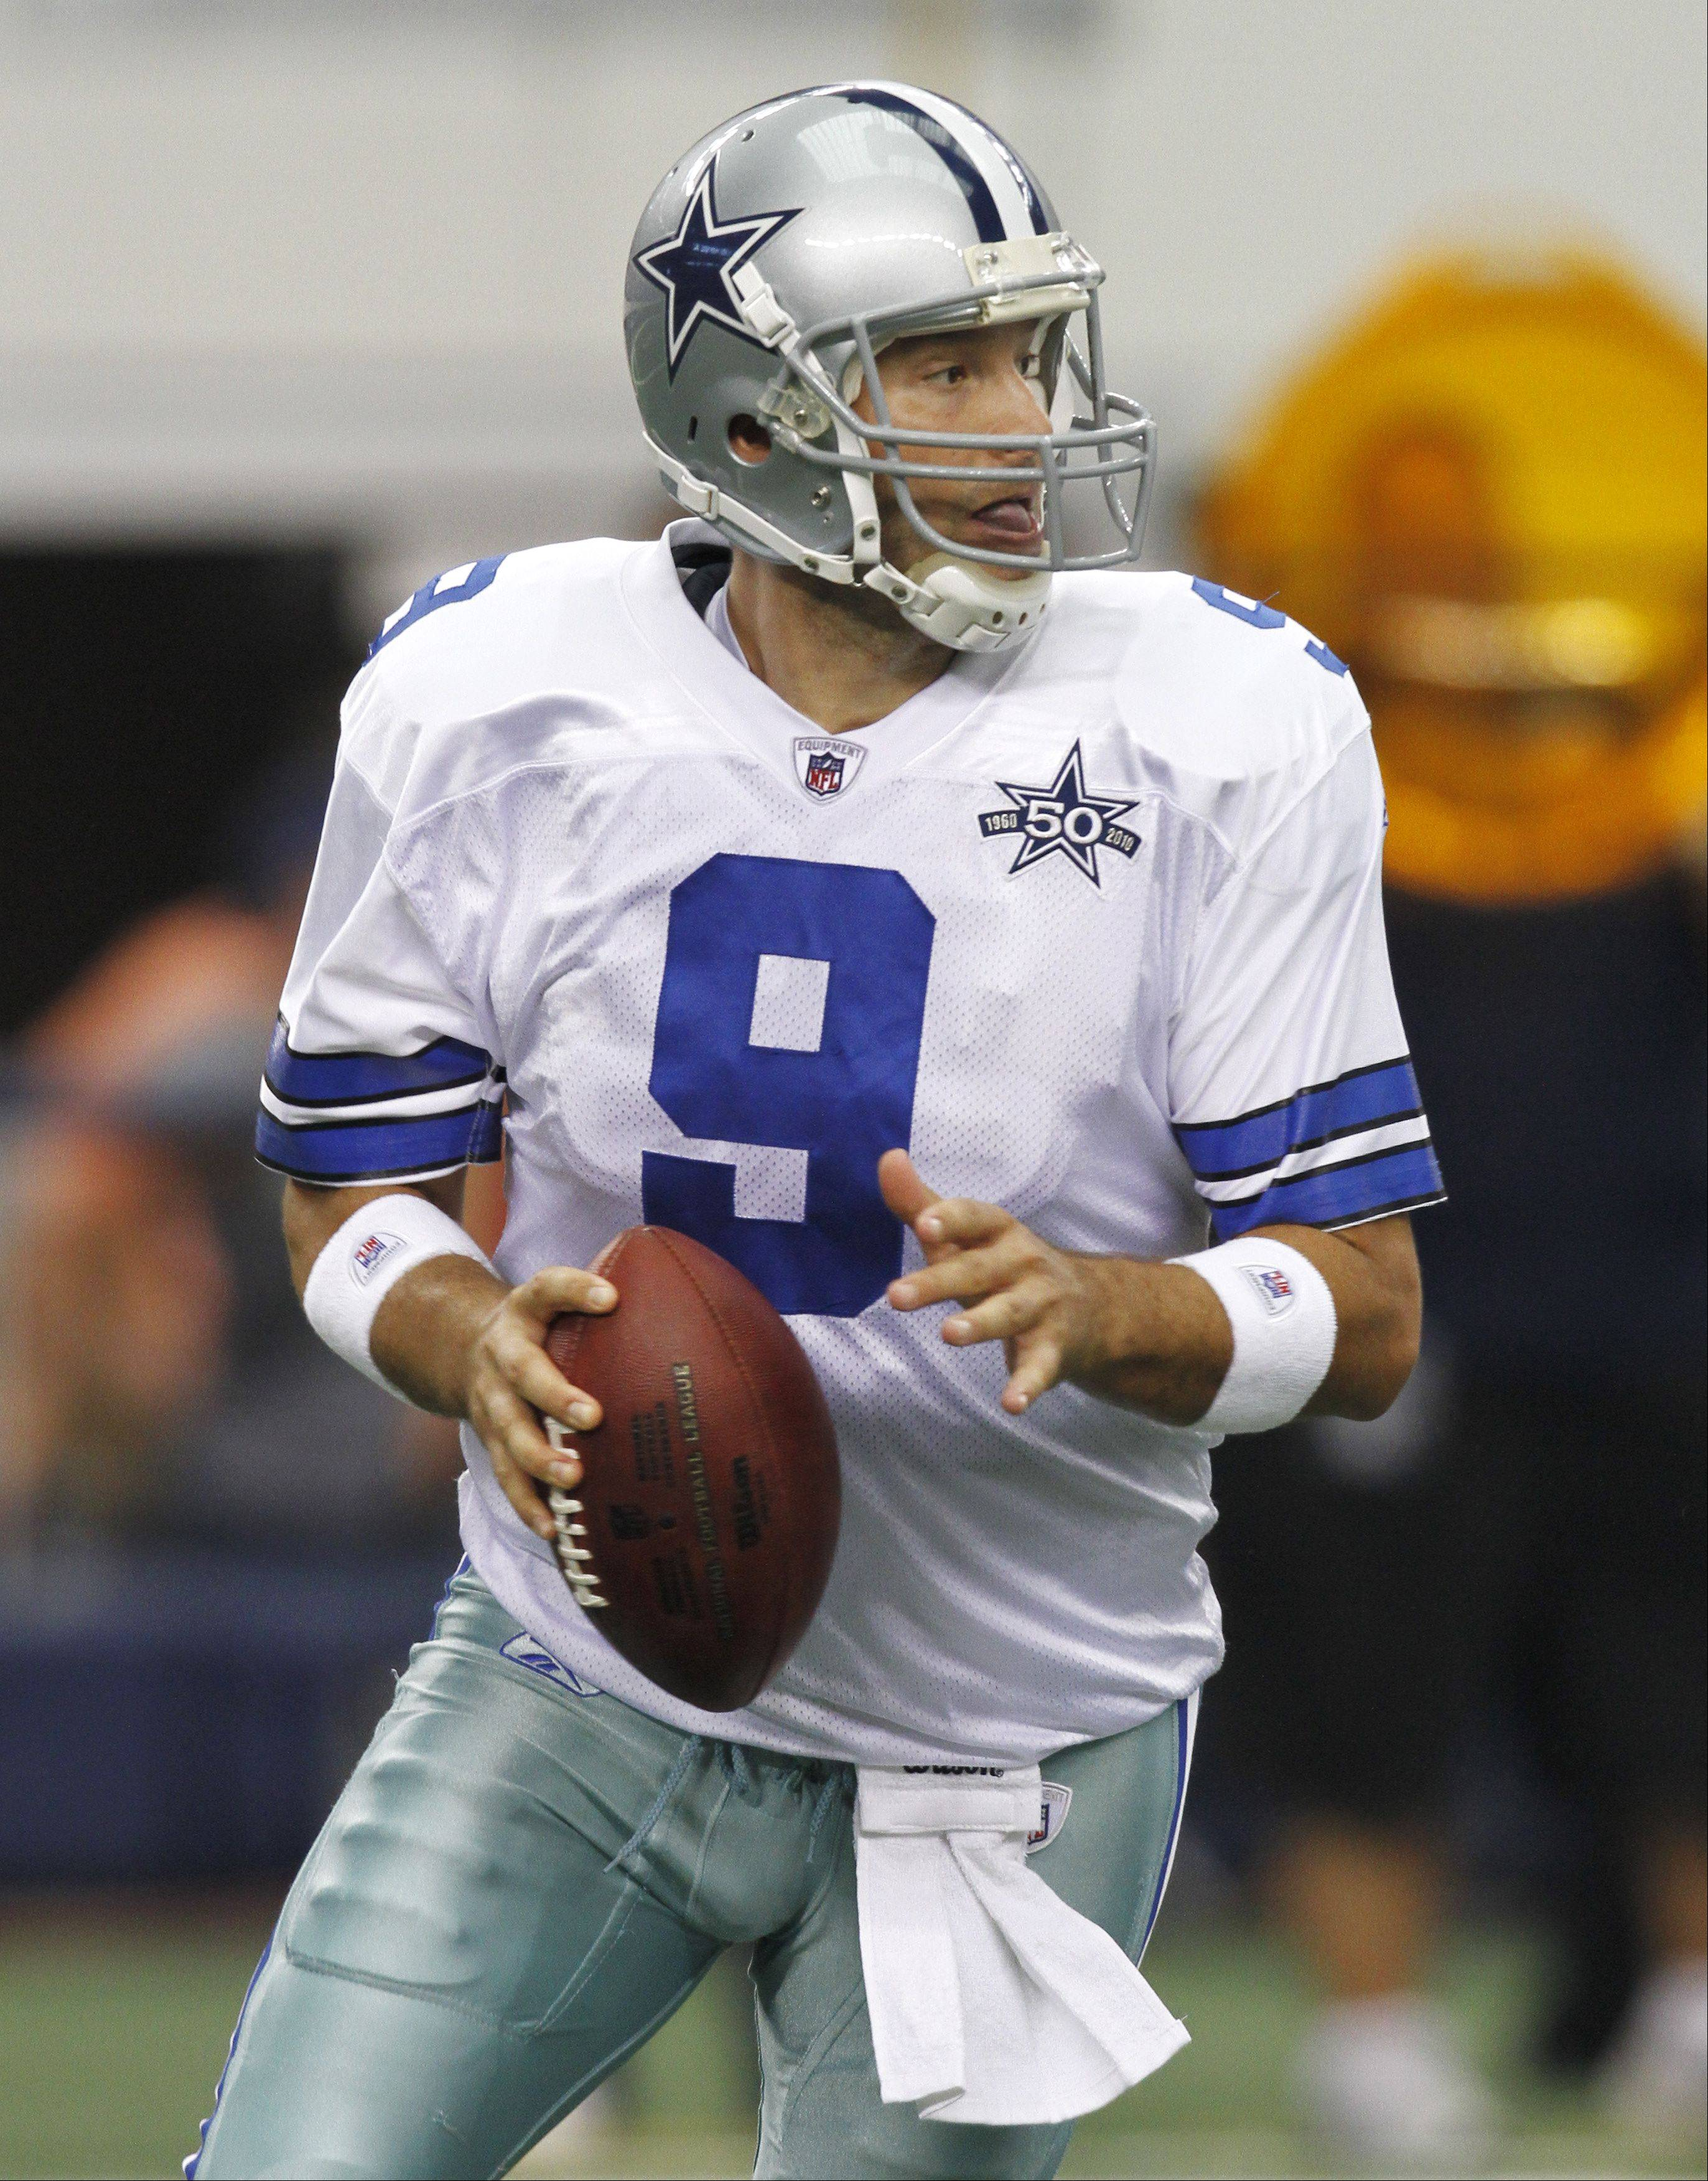 Dallas Cowboys quarterback Tony Romo (9) looks for an open receiver in the first half of an NFL football game against the Chicago Bears, Sunday, Sept. 19, 2010, in Arlington, Texas. (AP Photo/Tim Sharp)